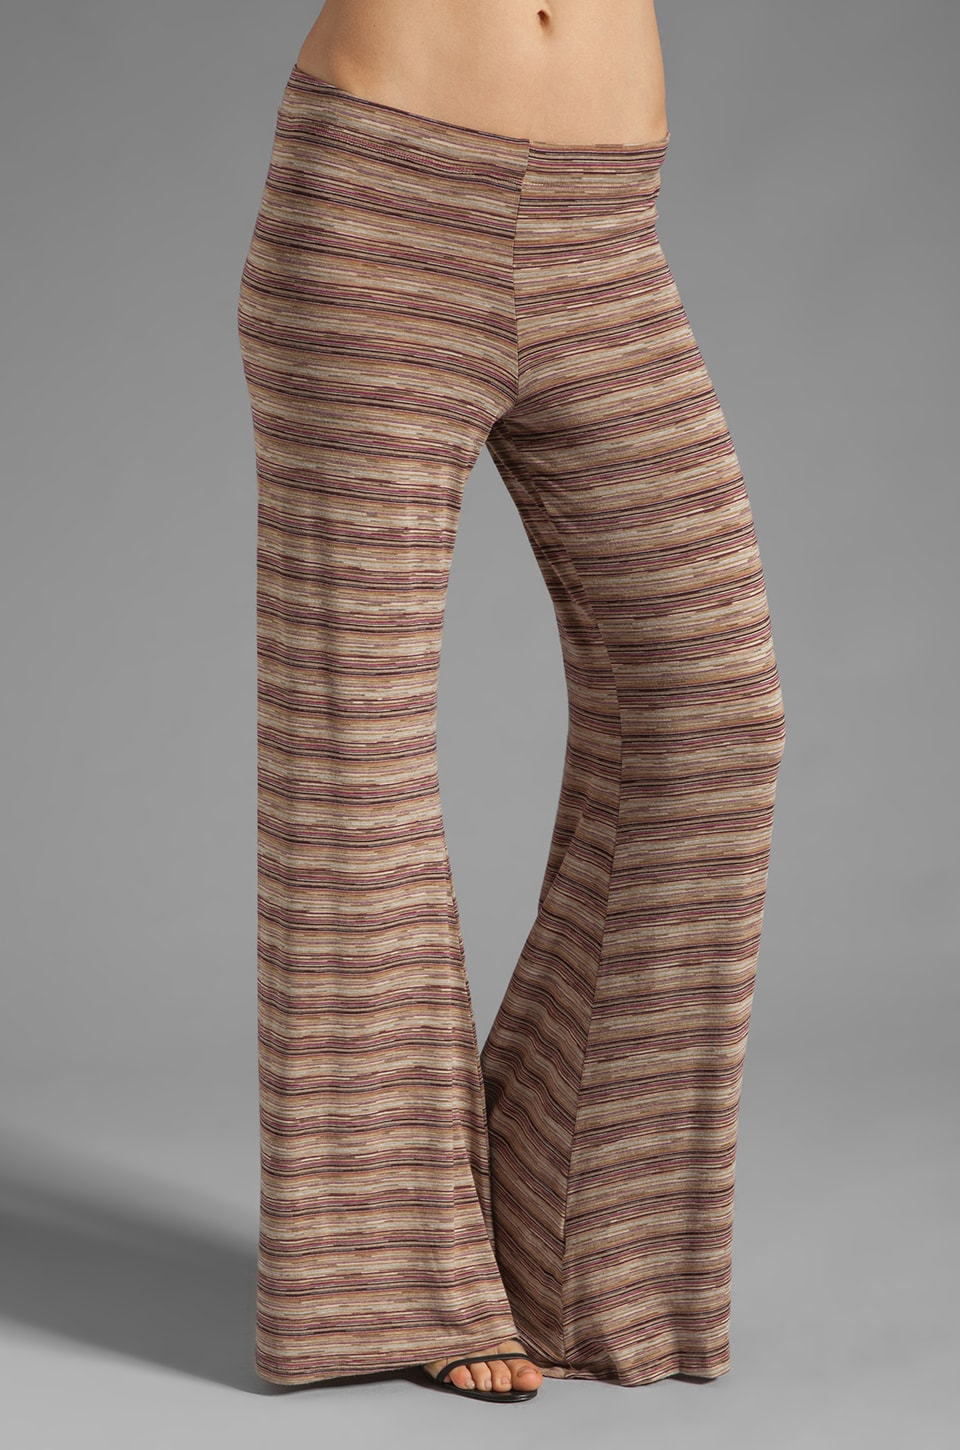 Michael Lauren Derby Wide Leg Pant in Berry Toffee